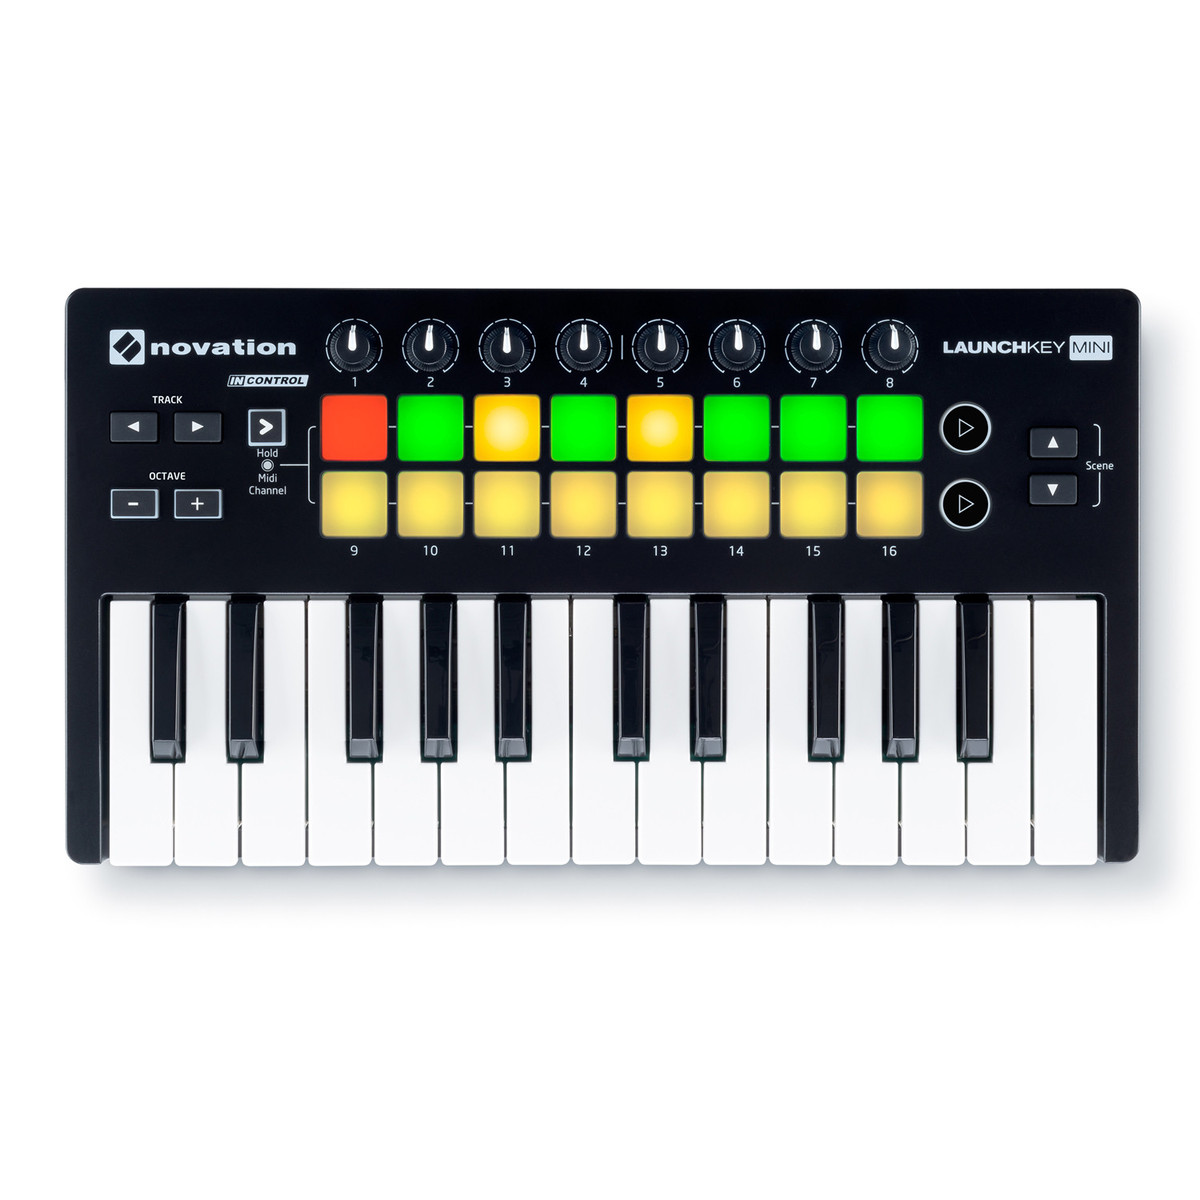 novation launchkey mini mk2 midi controller keyboard at. Black Bedroom Furniture Sets. Home Design Ideas